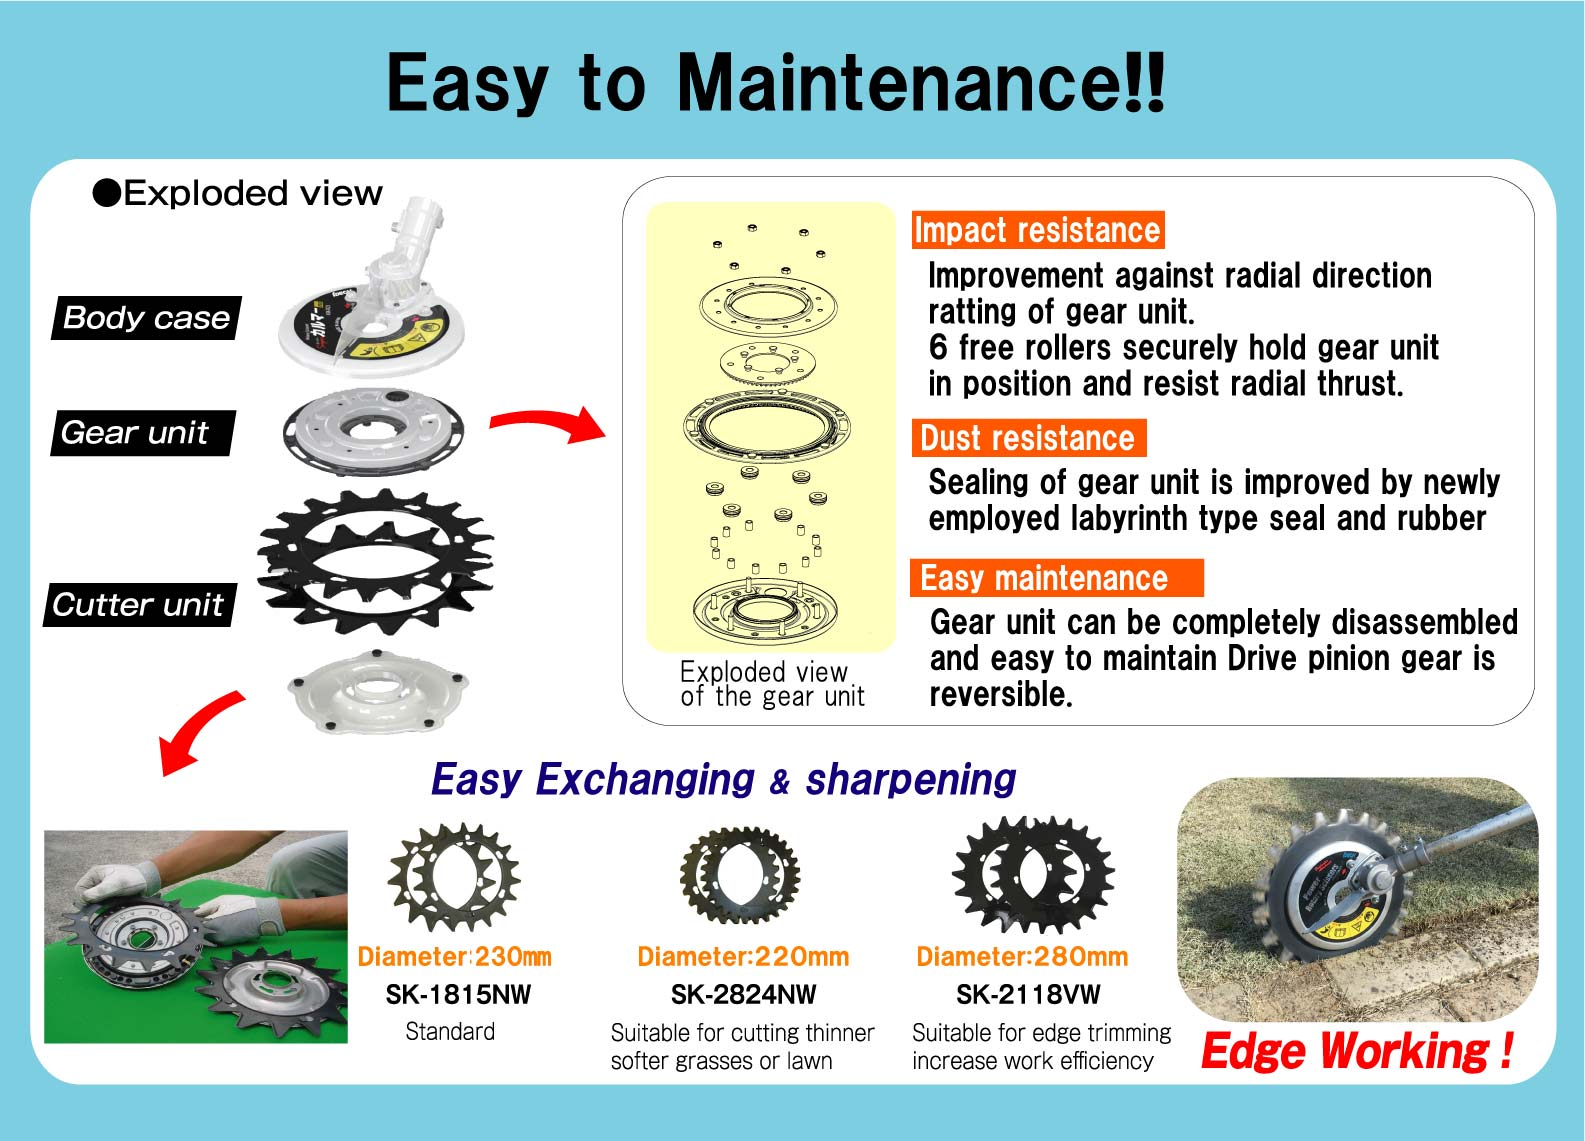 6.Easy to Maintenance